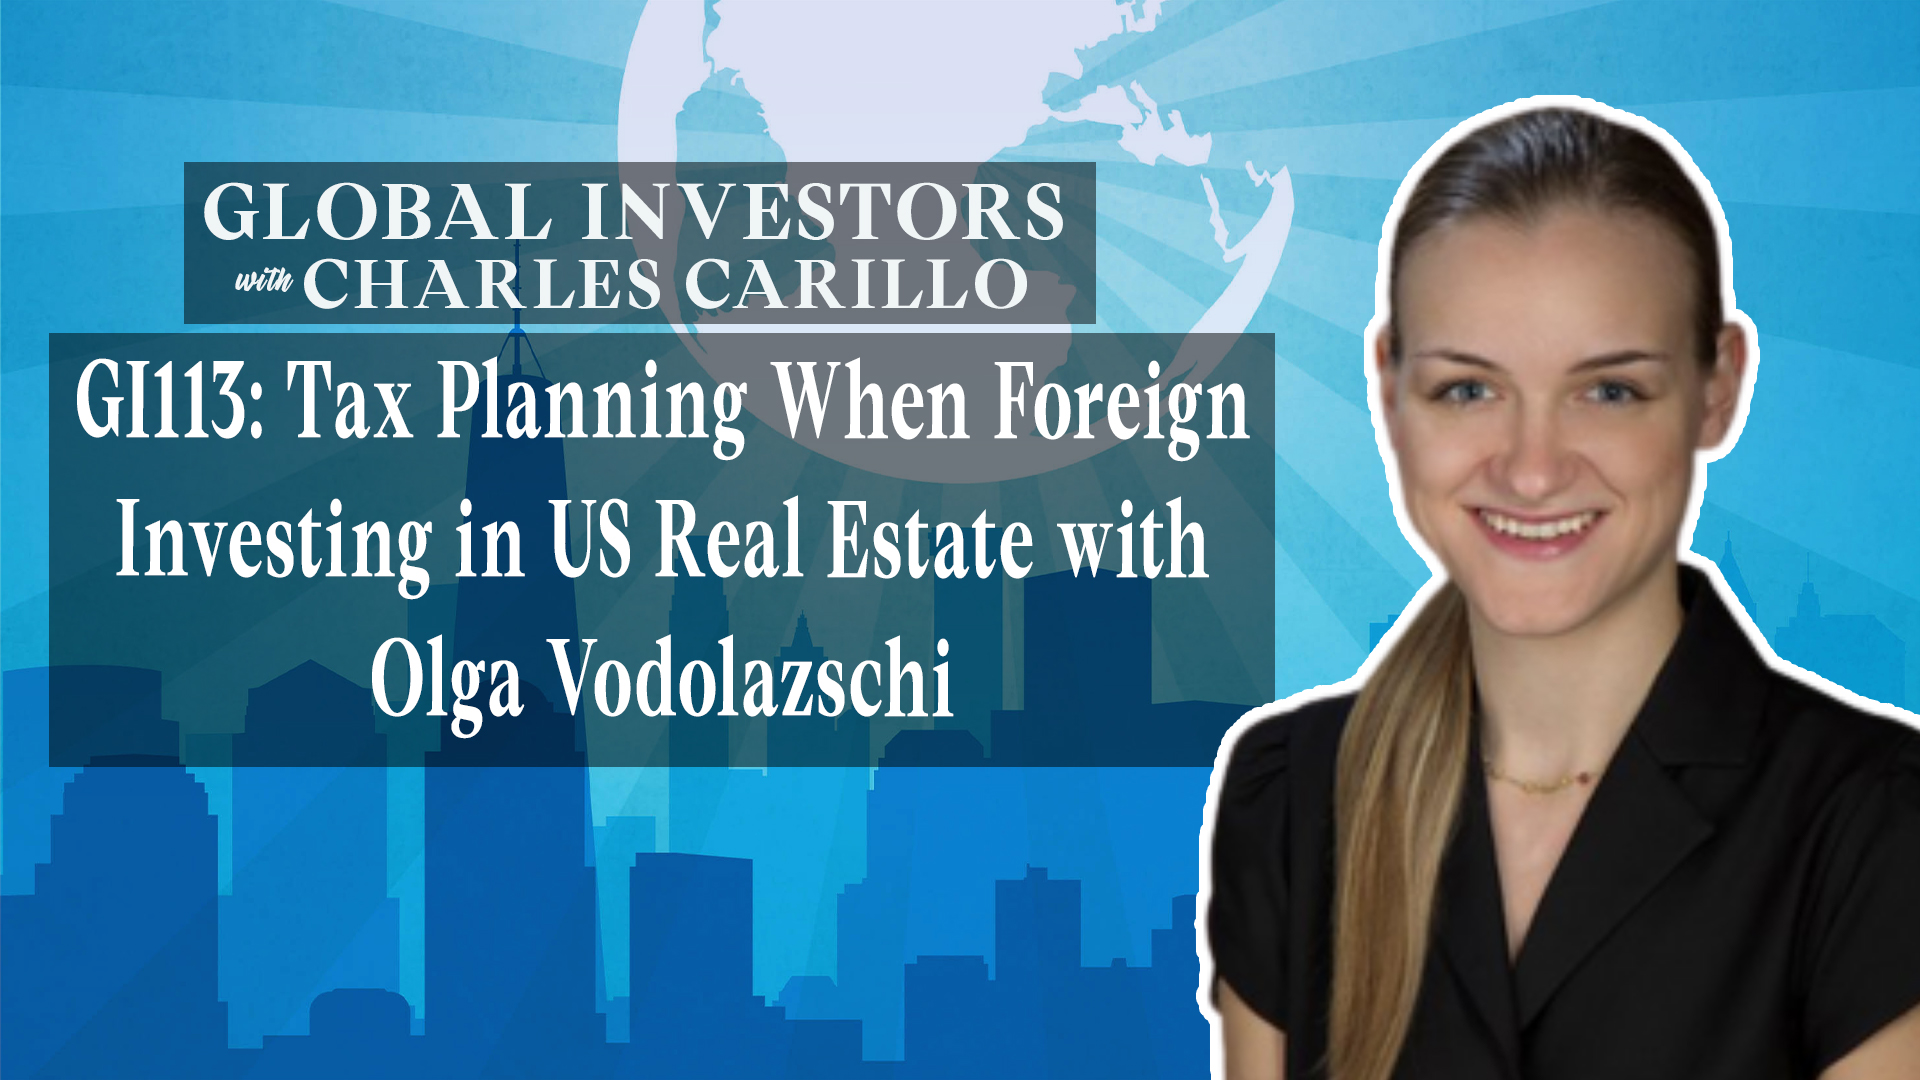 GI113: Tax Planning When Foreign Investing in US Real Estate with Olga Vodolazschi